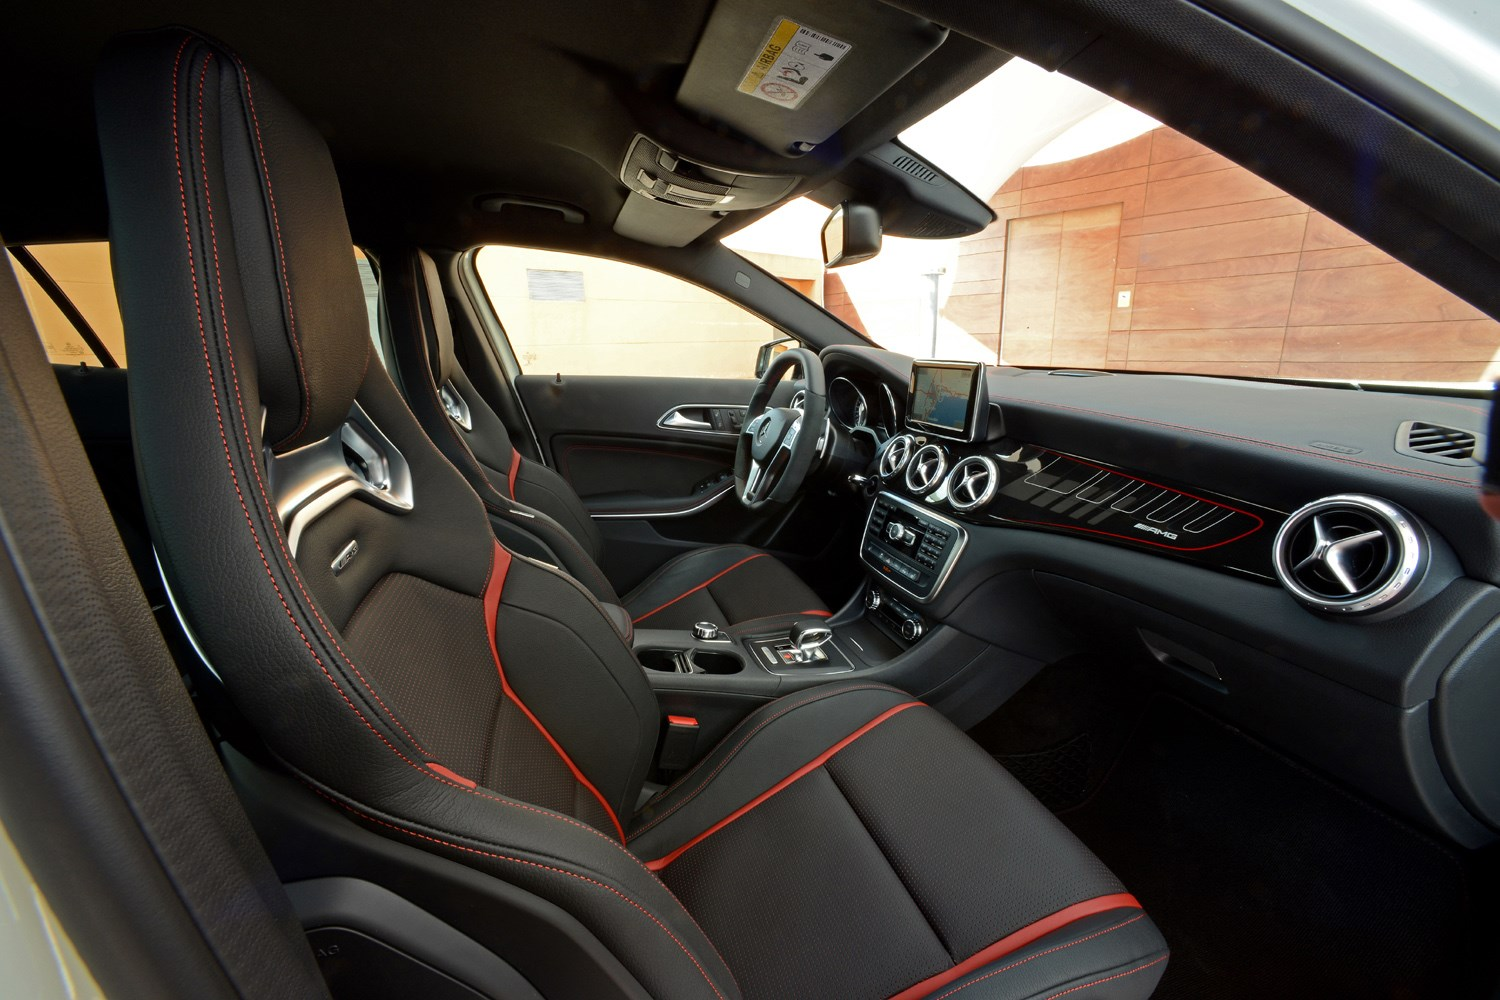 Mercedes benz gla class amg 2014 2017 photos parkers for Mercedes benz gla class interior